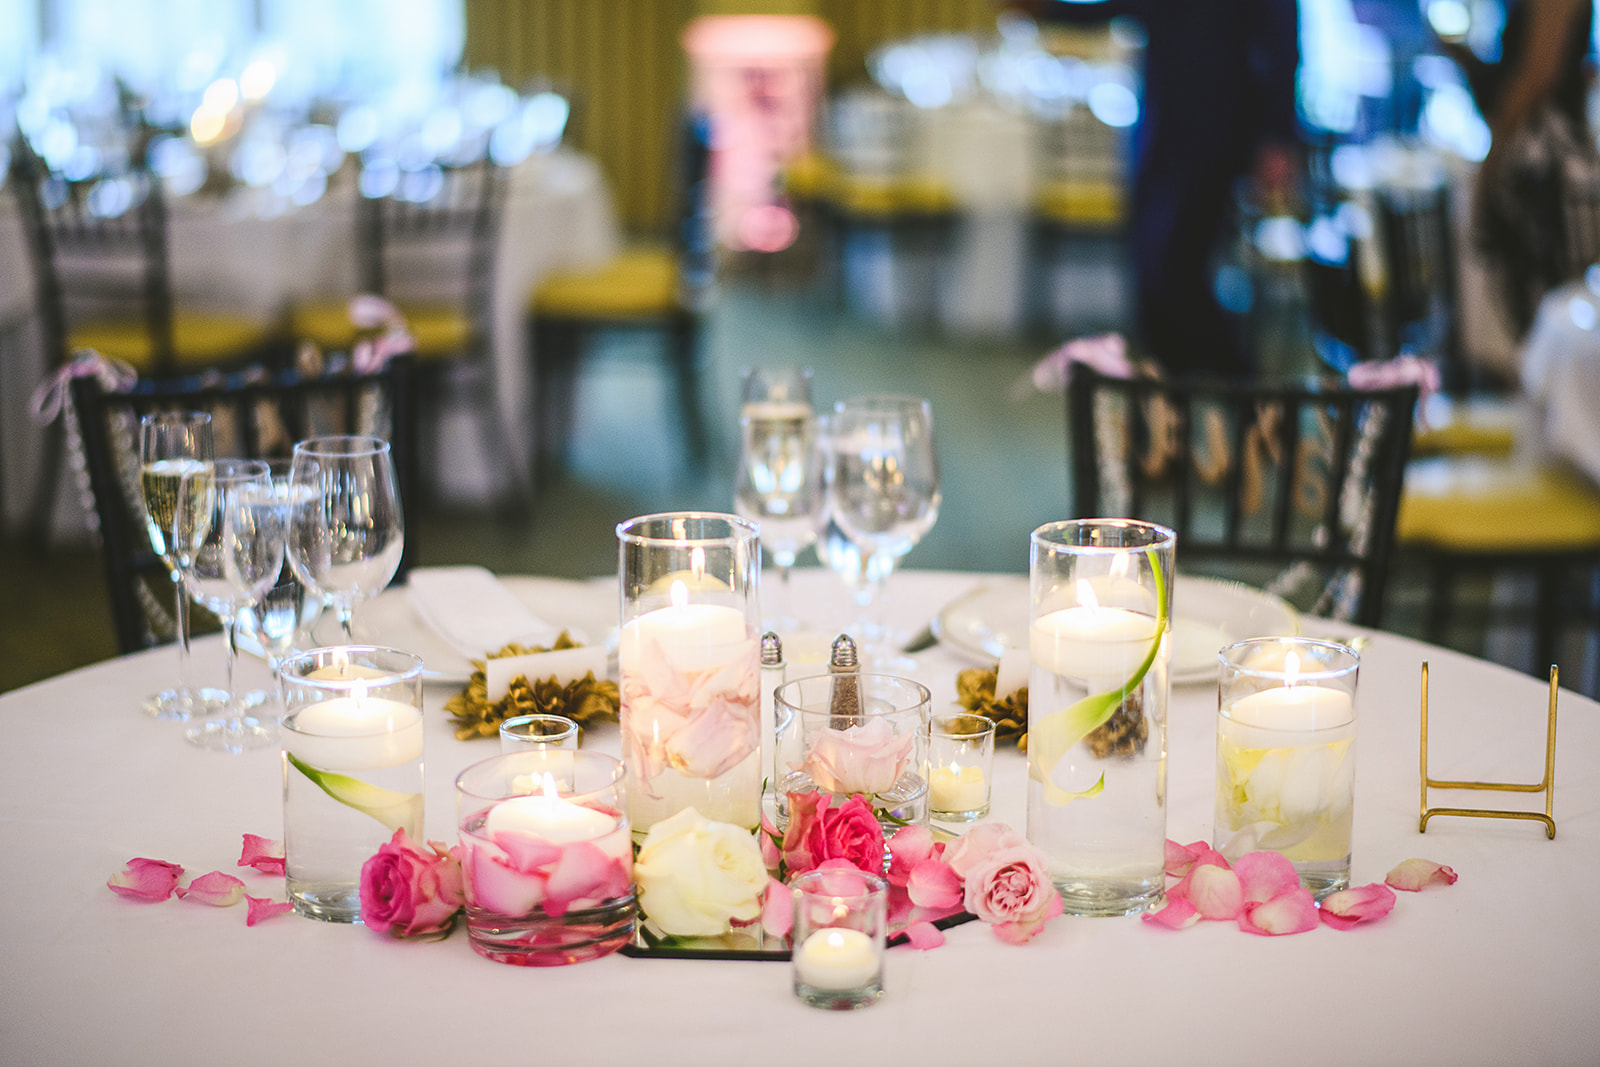 Atelier Ashley Flowers + Sam Hurd Photography + Washington Golf and Country Club + Diamond and Pearl Wedding + sweetheart table + floating candles + rose petals